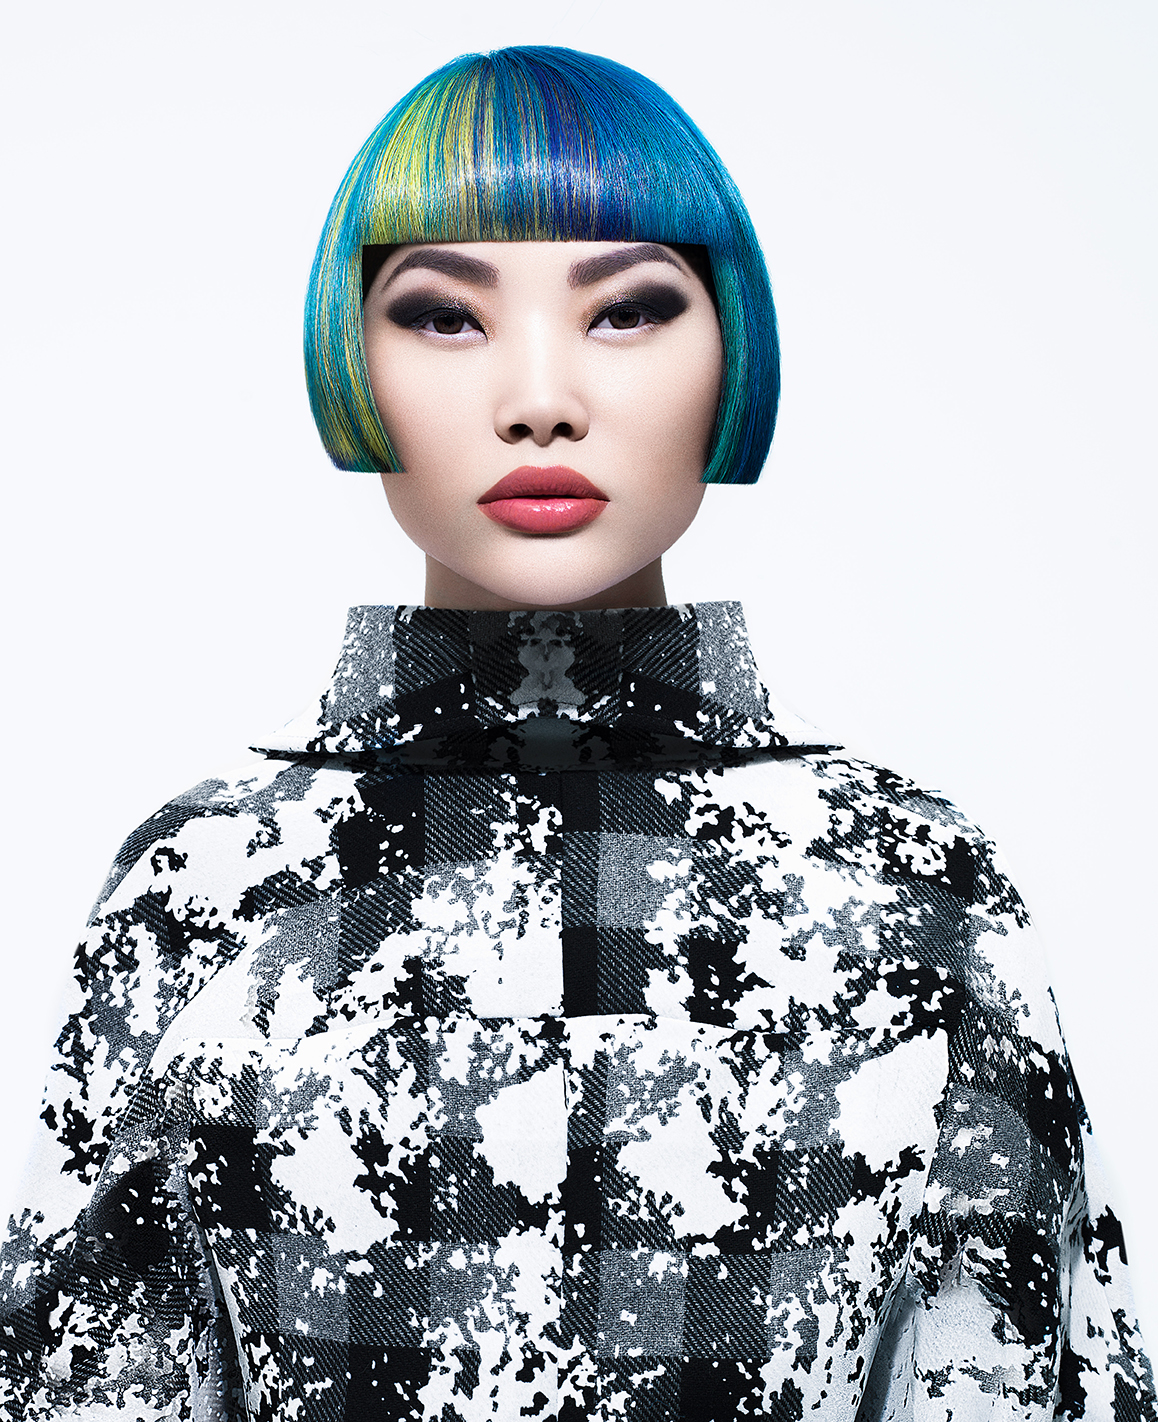 2017 NAHA FINALISTS: Hair Color